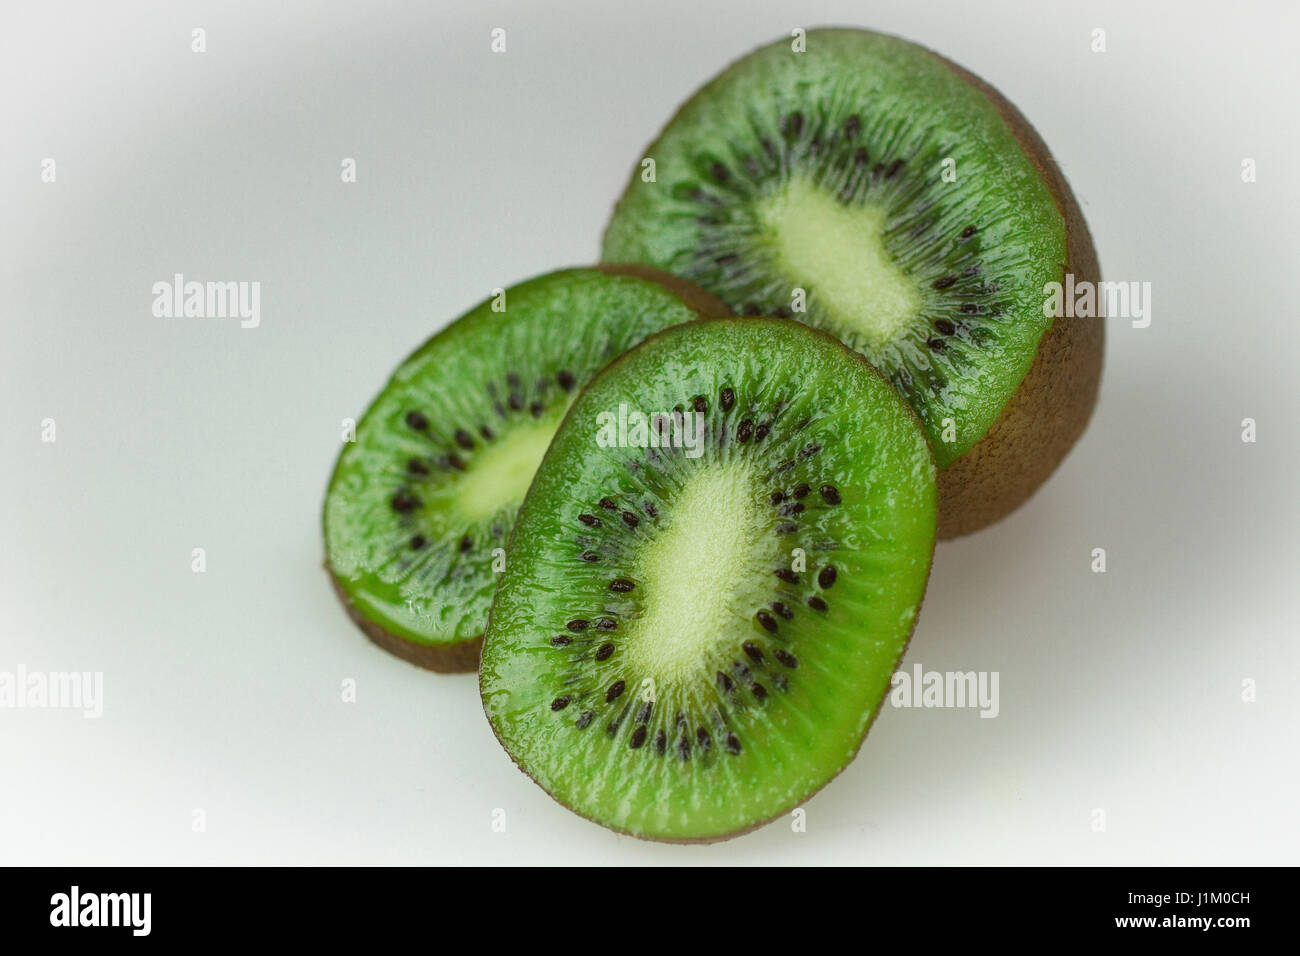 kiwi fruit, sliced and presented in the studio showing detail due to macro usage - Stock Image